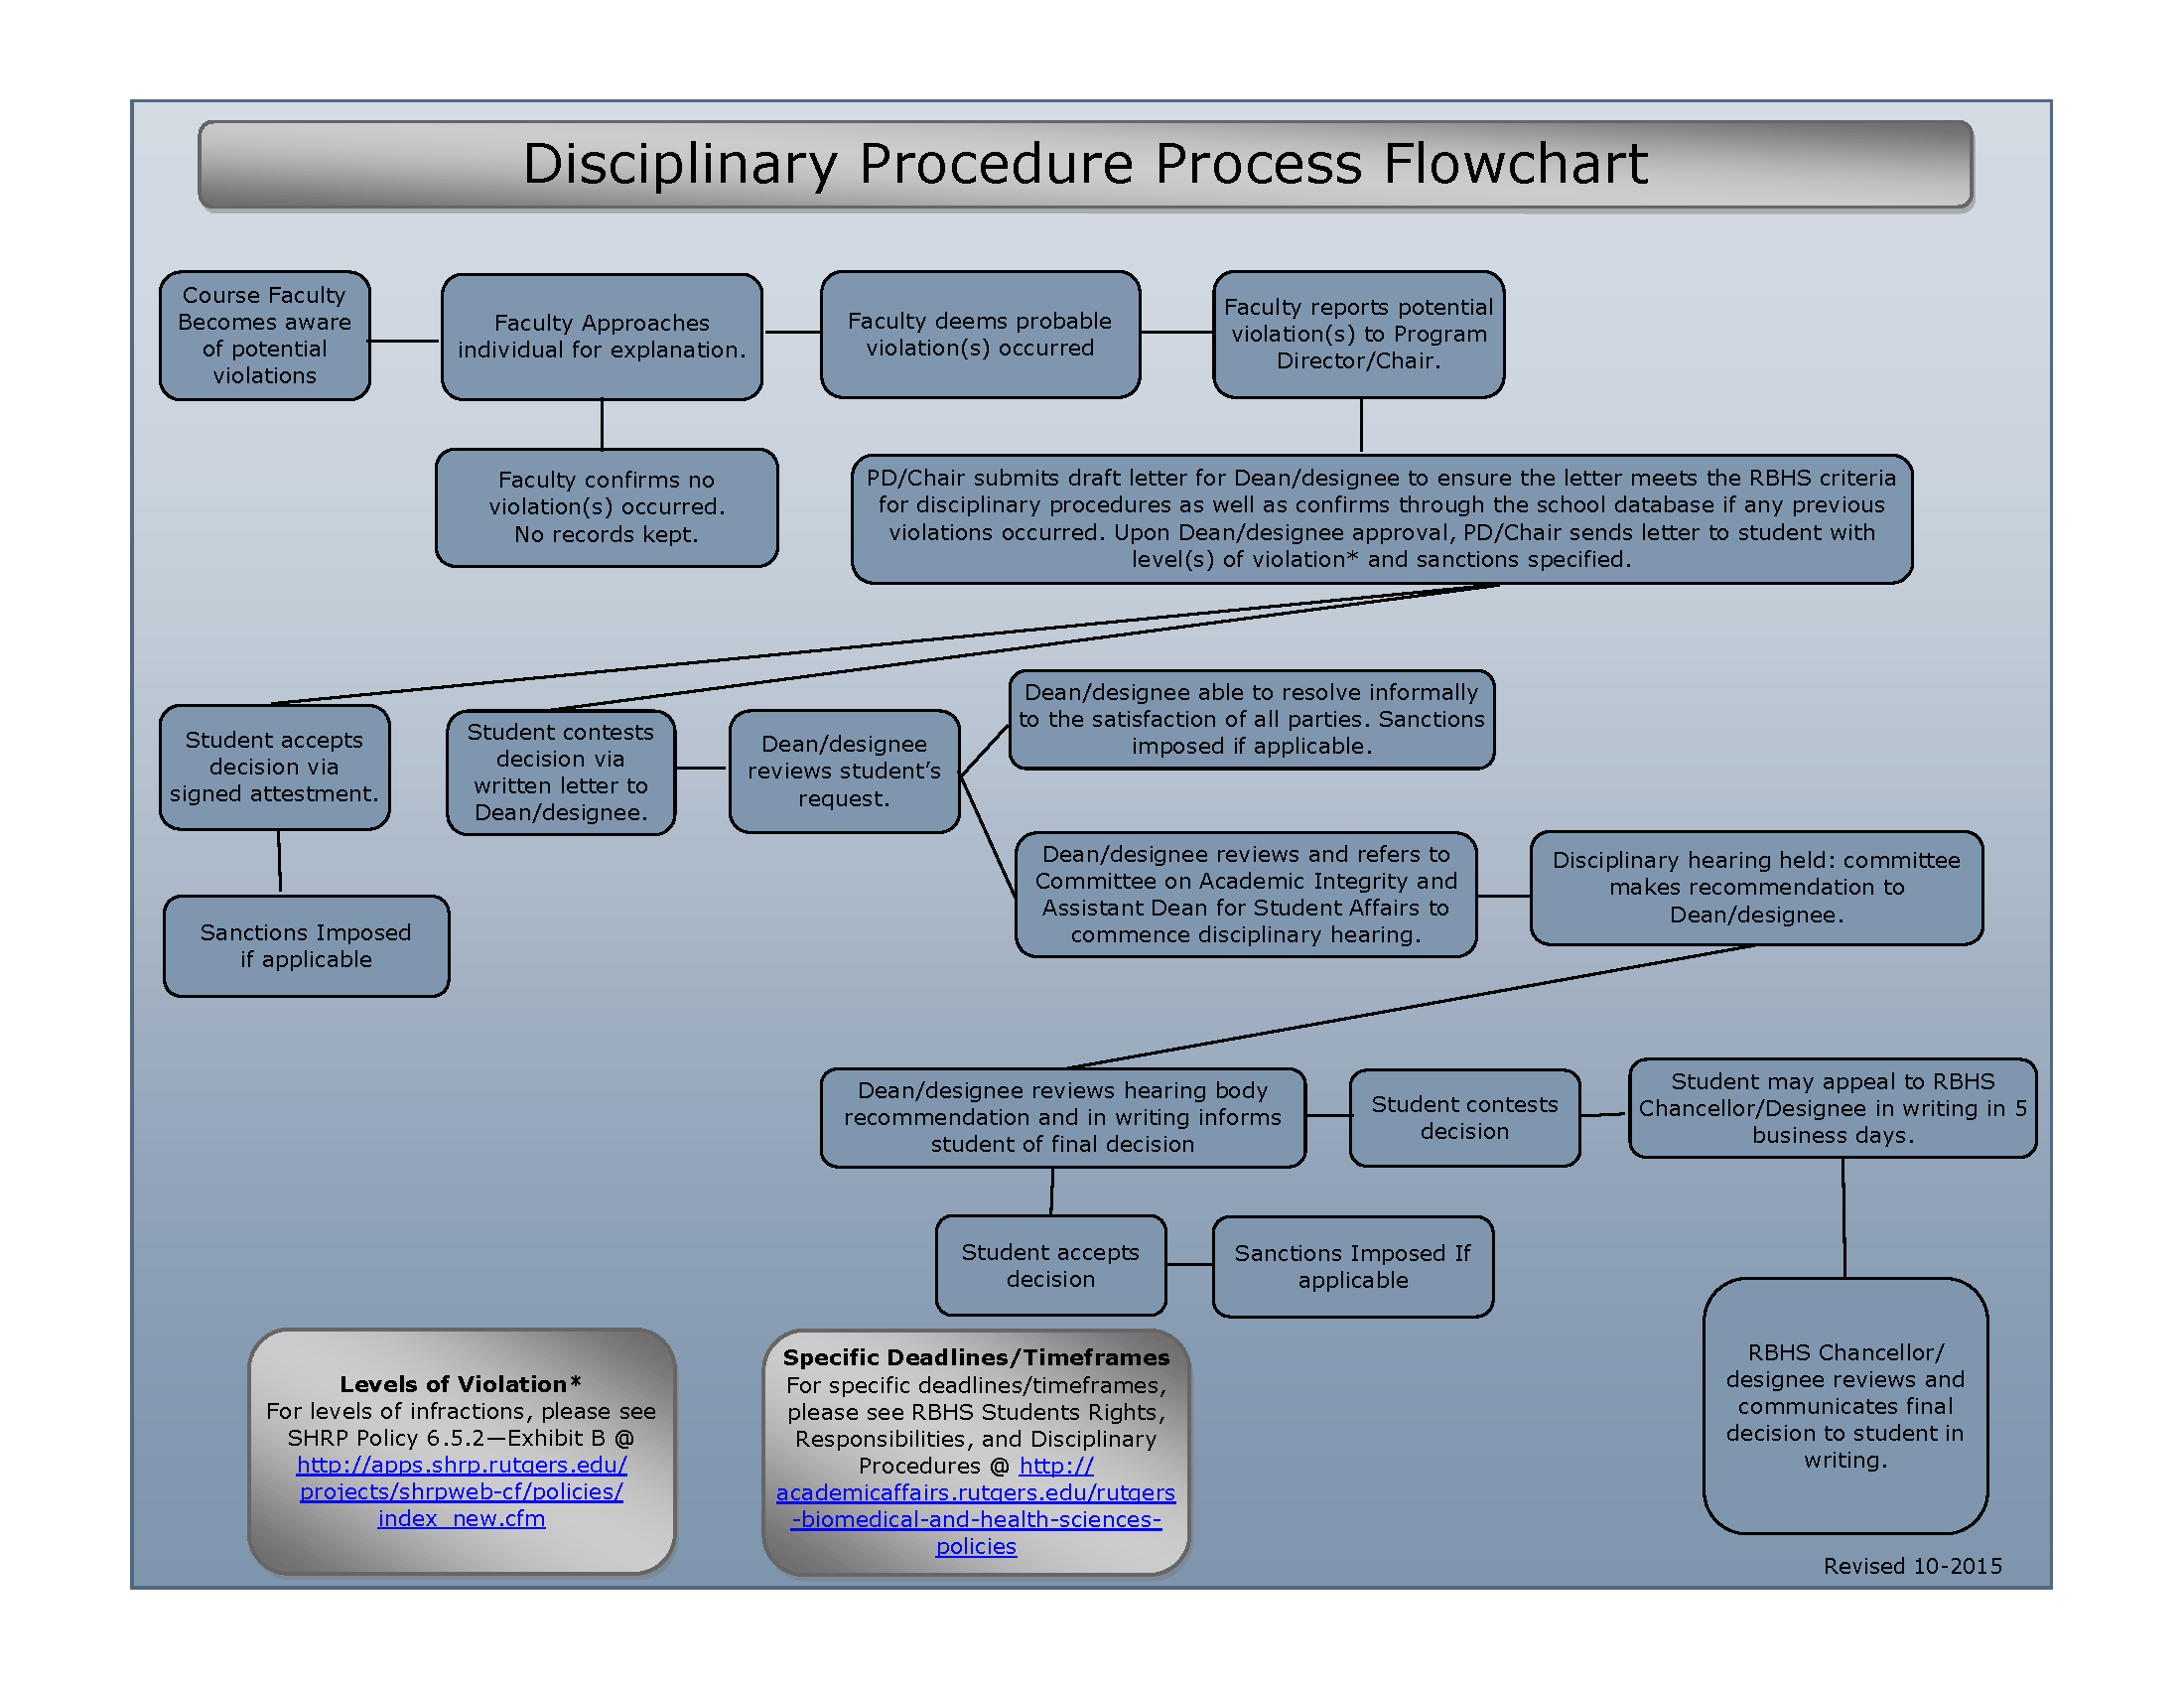 CAI Disciplnary Procedure Flowchart